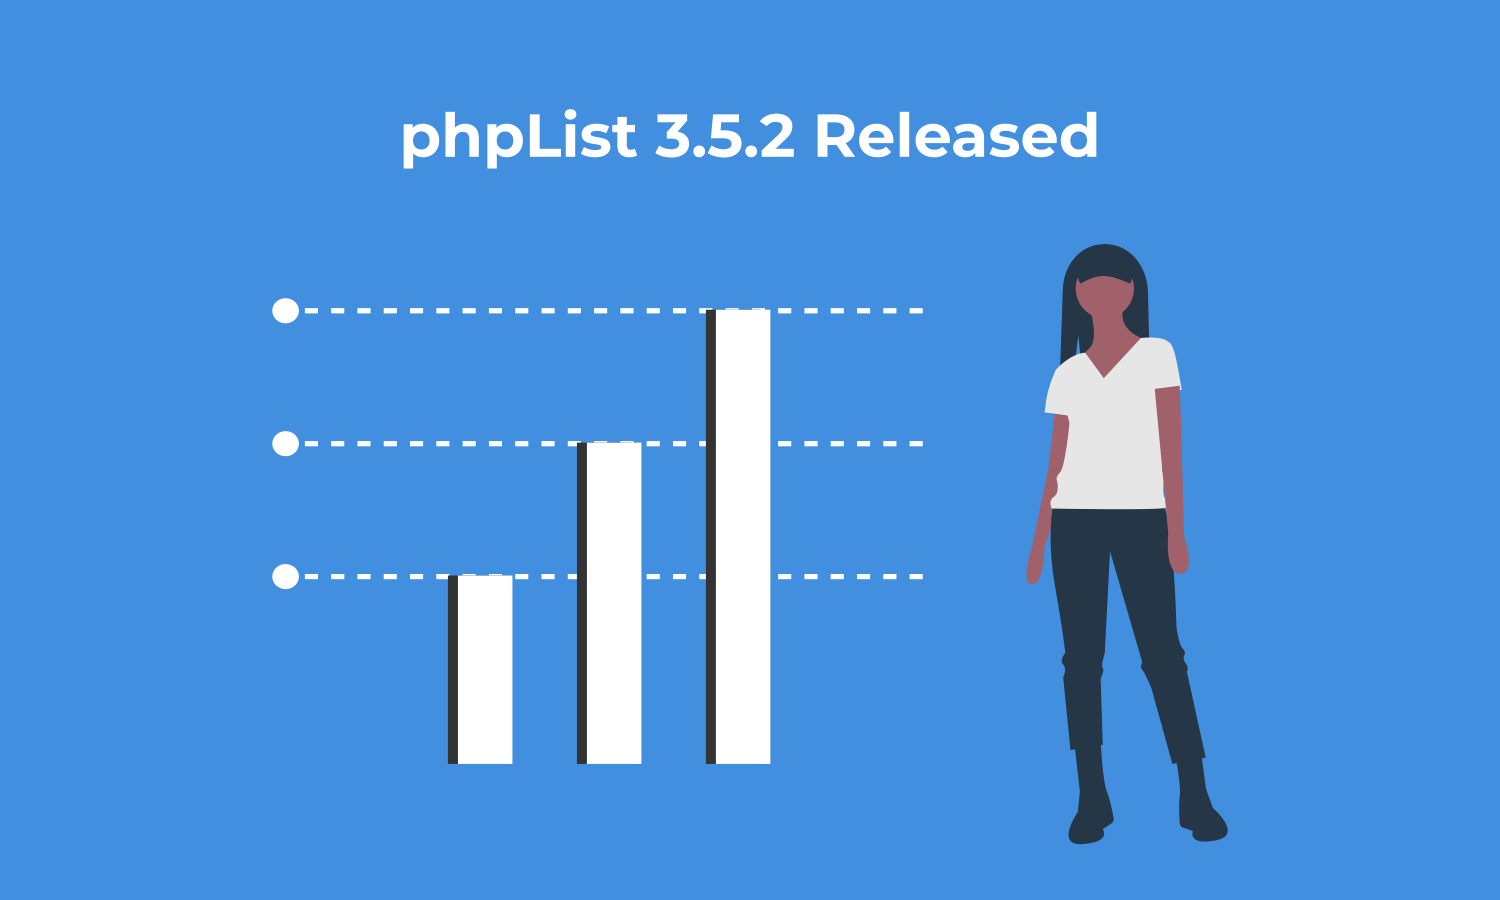 phpList 3.5.2 release image